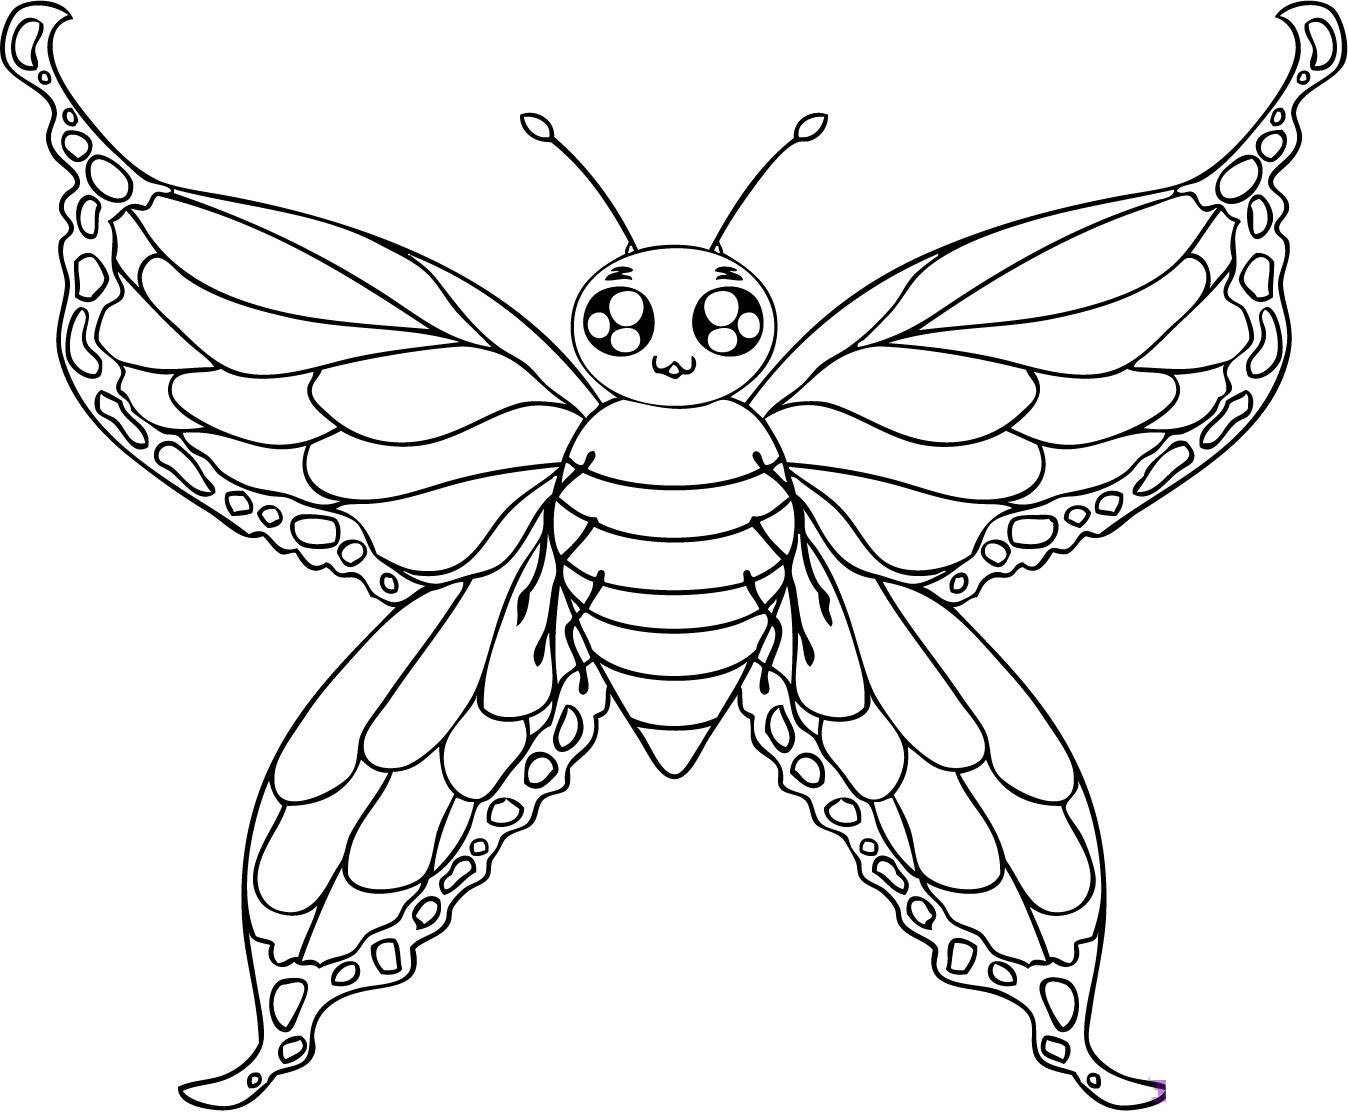 Free Printable Butterfly Coloring Pages For Kids - photo#13